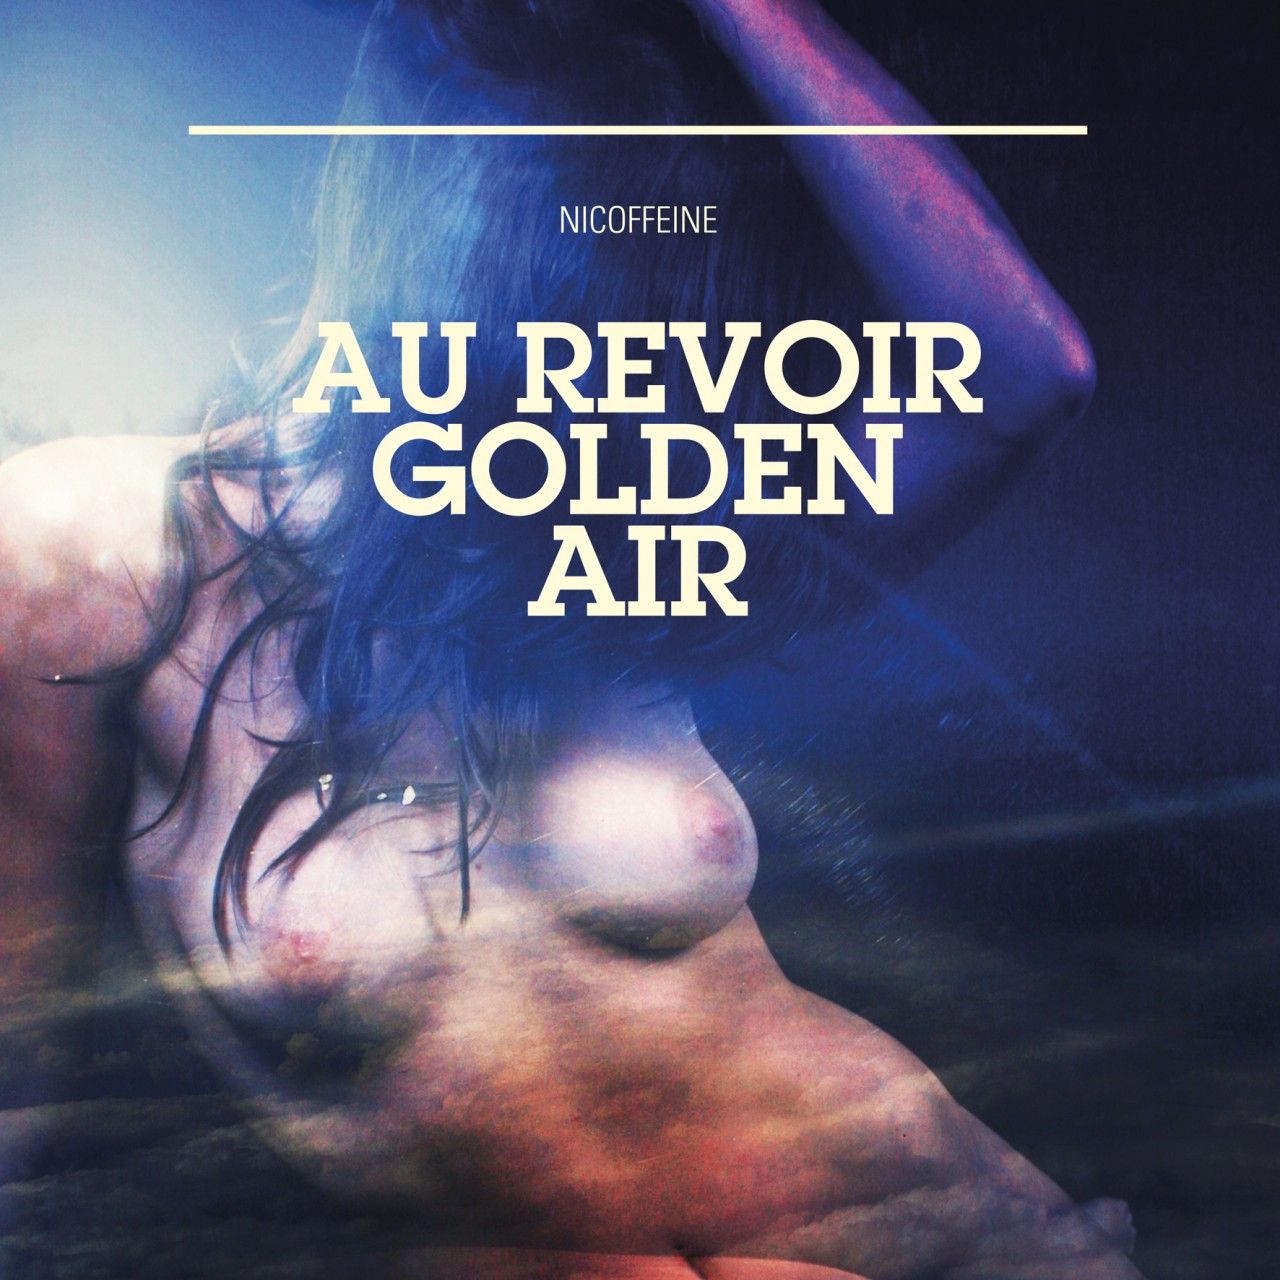 soheyl nassary AU REVOIR GOLDEN AIR